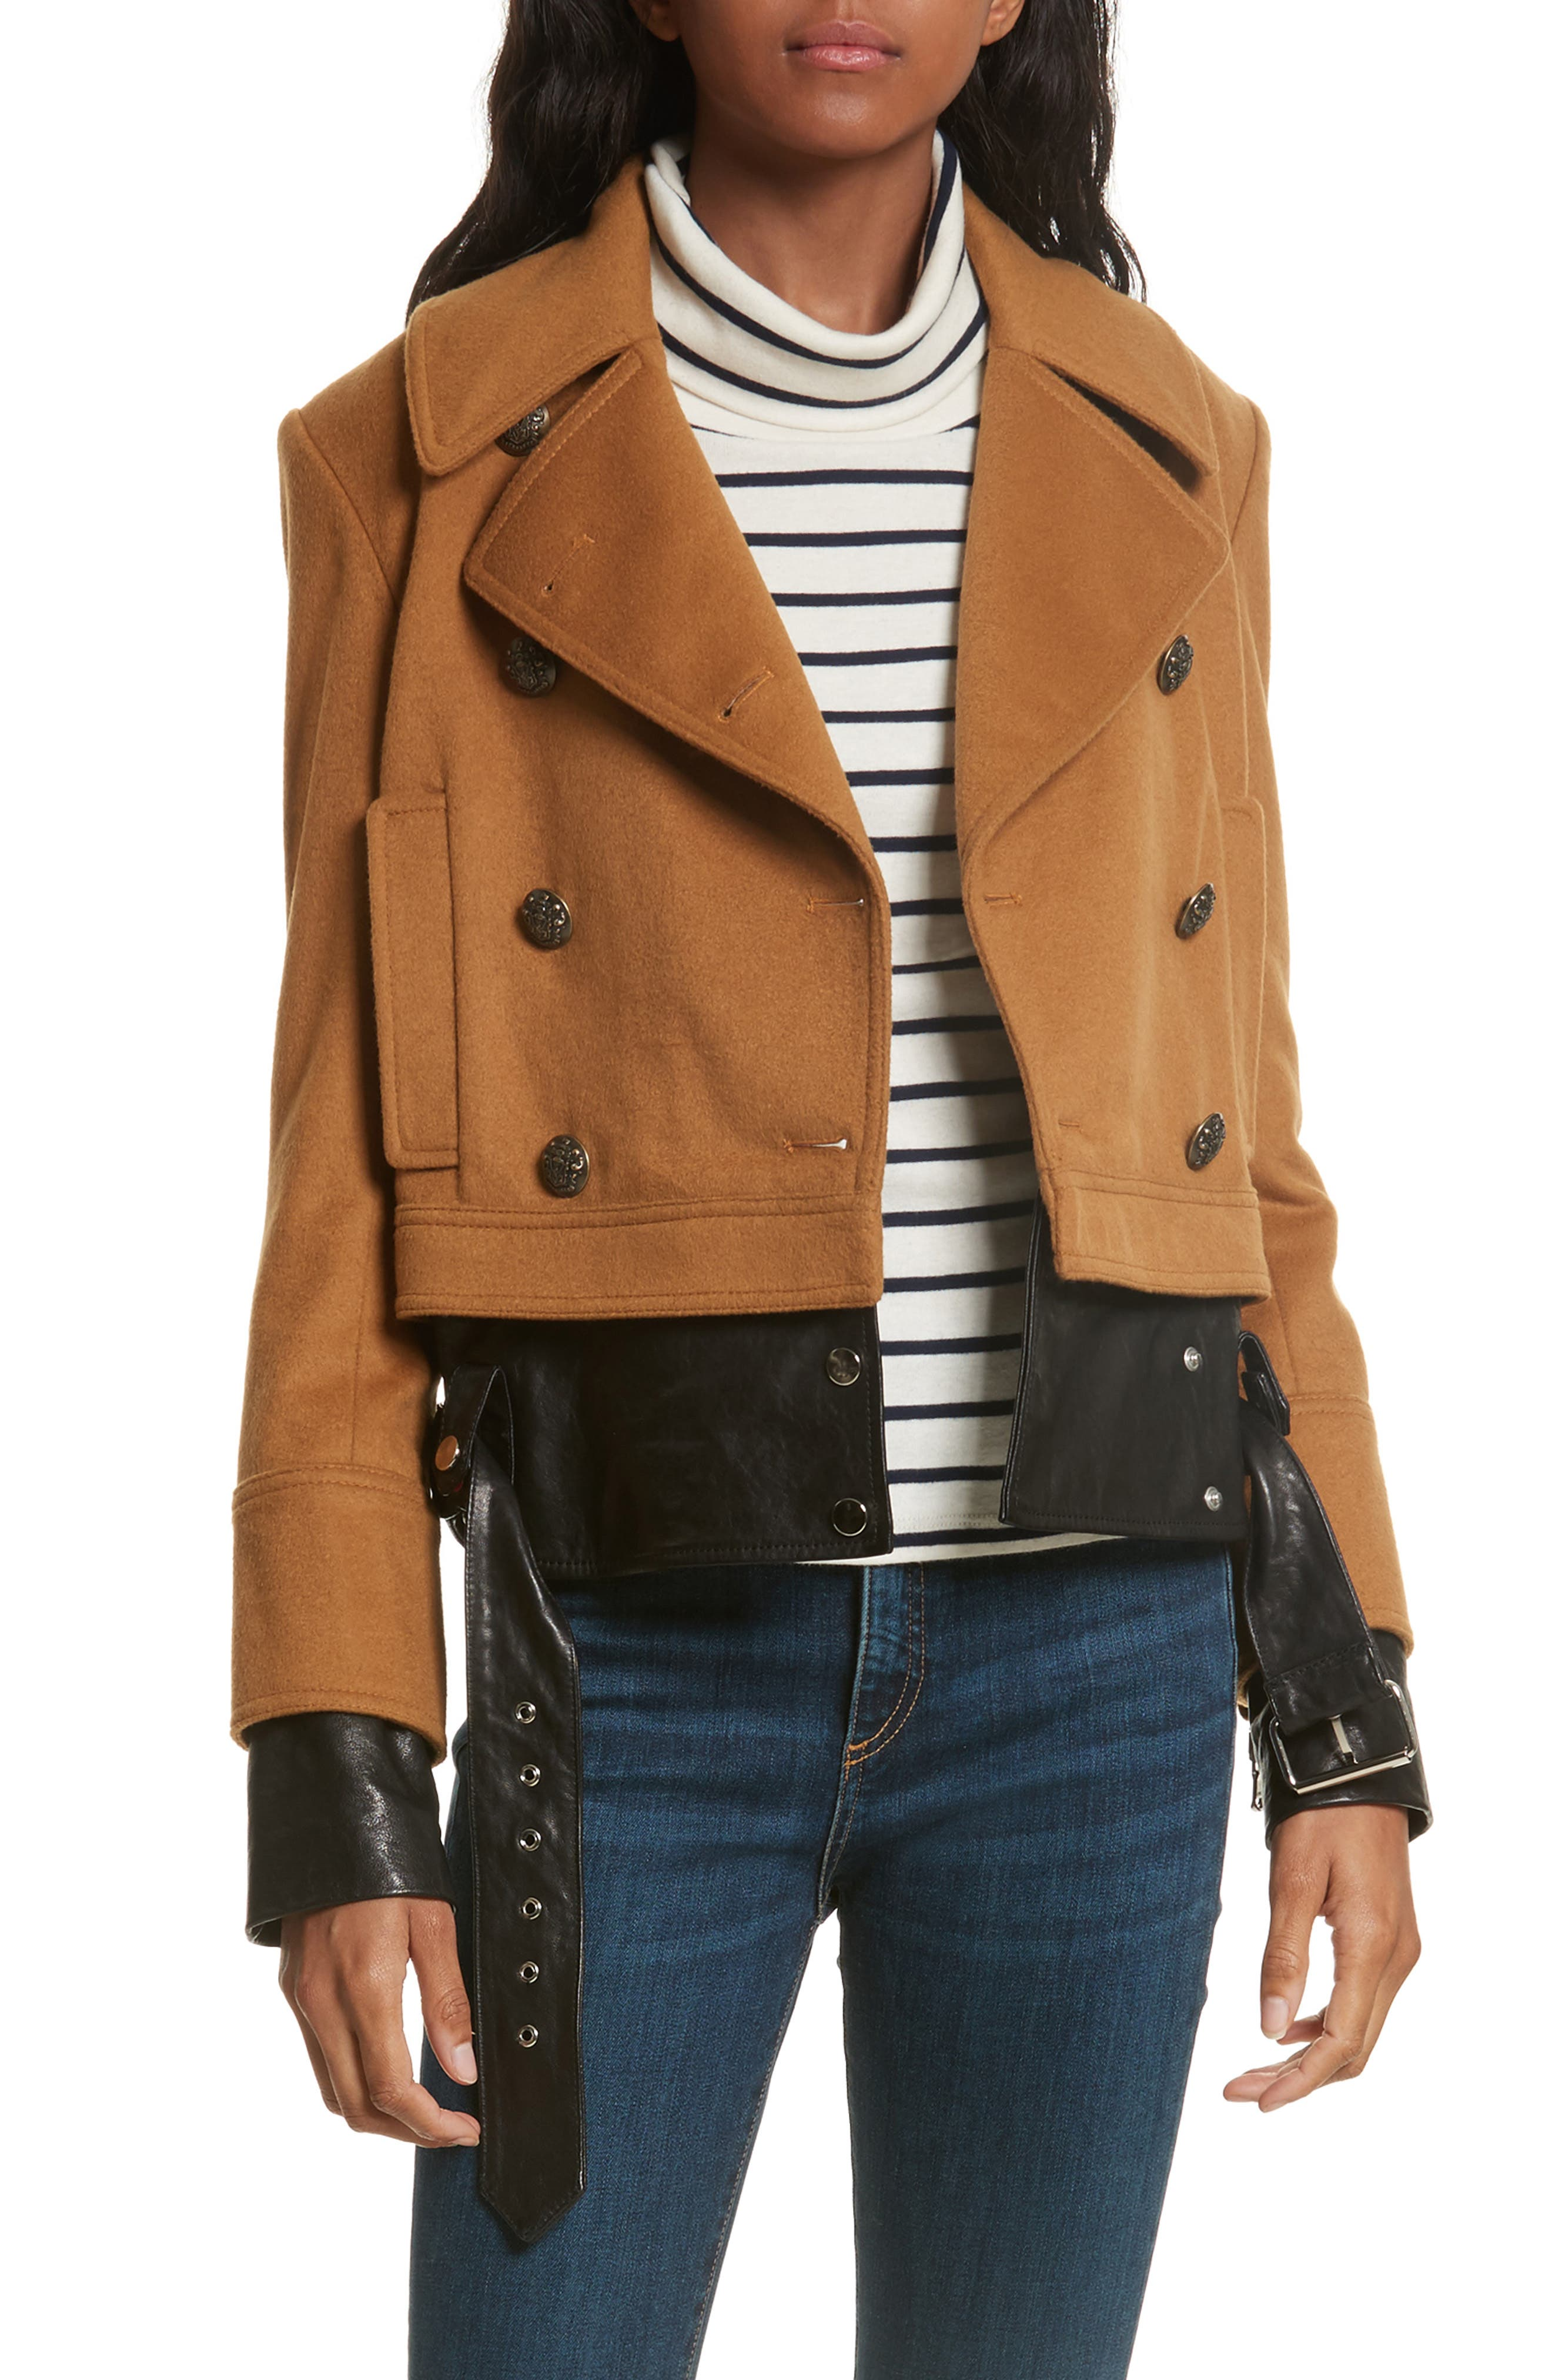 Yara Leather Hem Peacoat,                             Main thumbnail 1, color,                             Camel